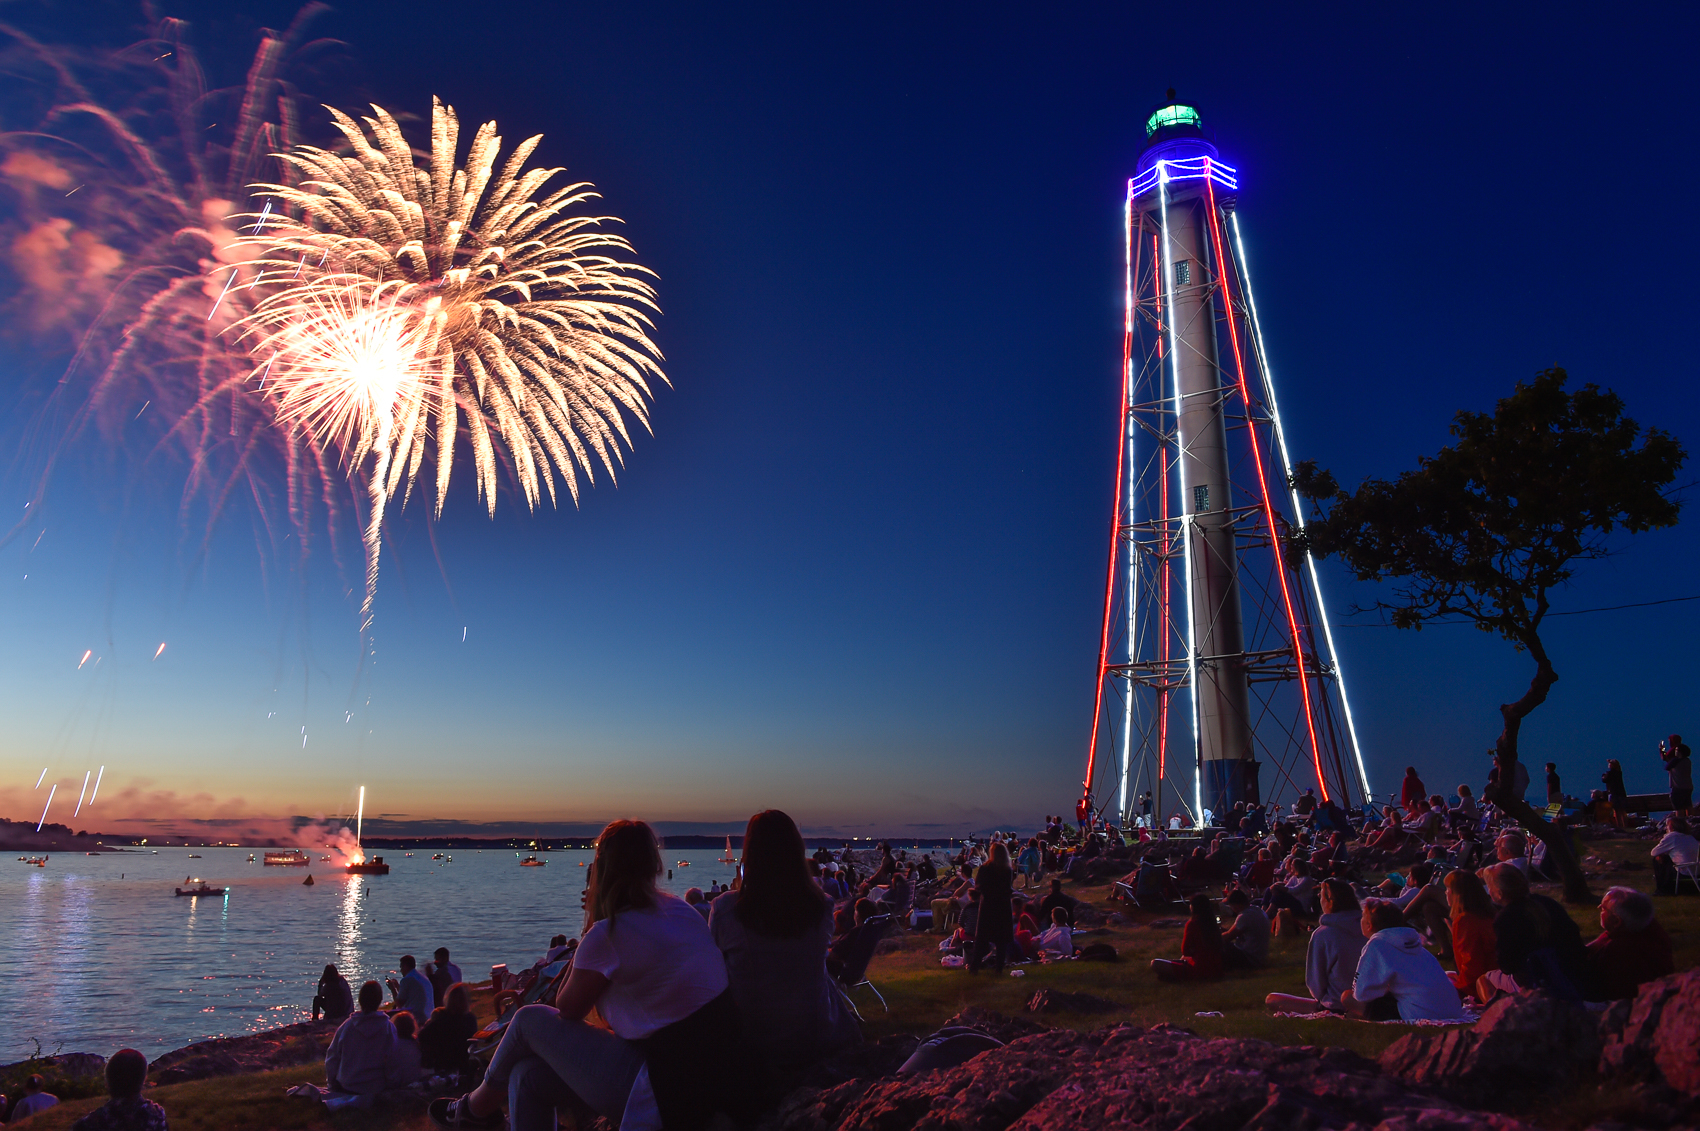 Nikon D4s, 1 sec @ f/6.3, ISO 400, 24-70mm  People gather at Marblehead Lighthouse Park to view the Fourth of July fireworks display over Marblehead Harbor, Tuesday, July 4, 2017.  [Wicked Local Staff Photo / David Sokol]